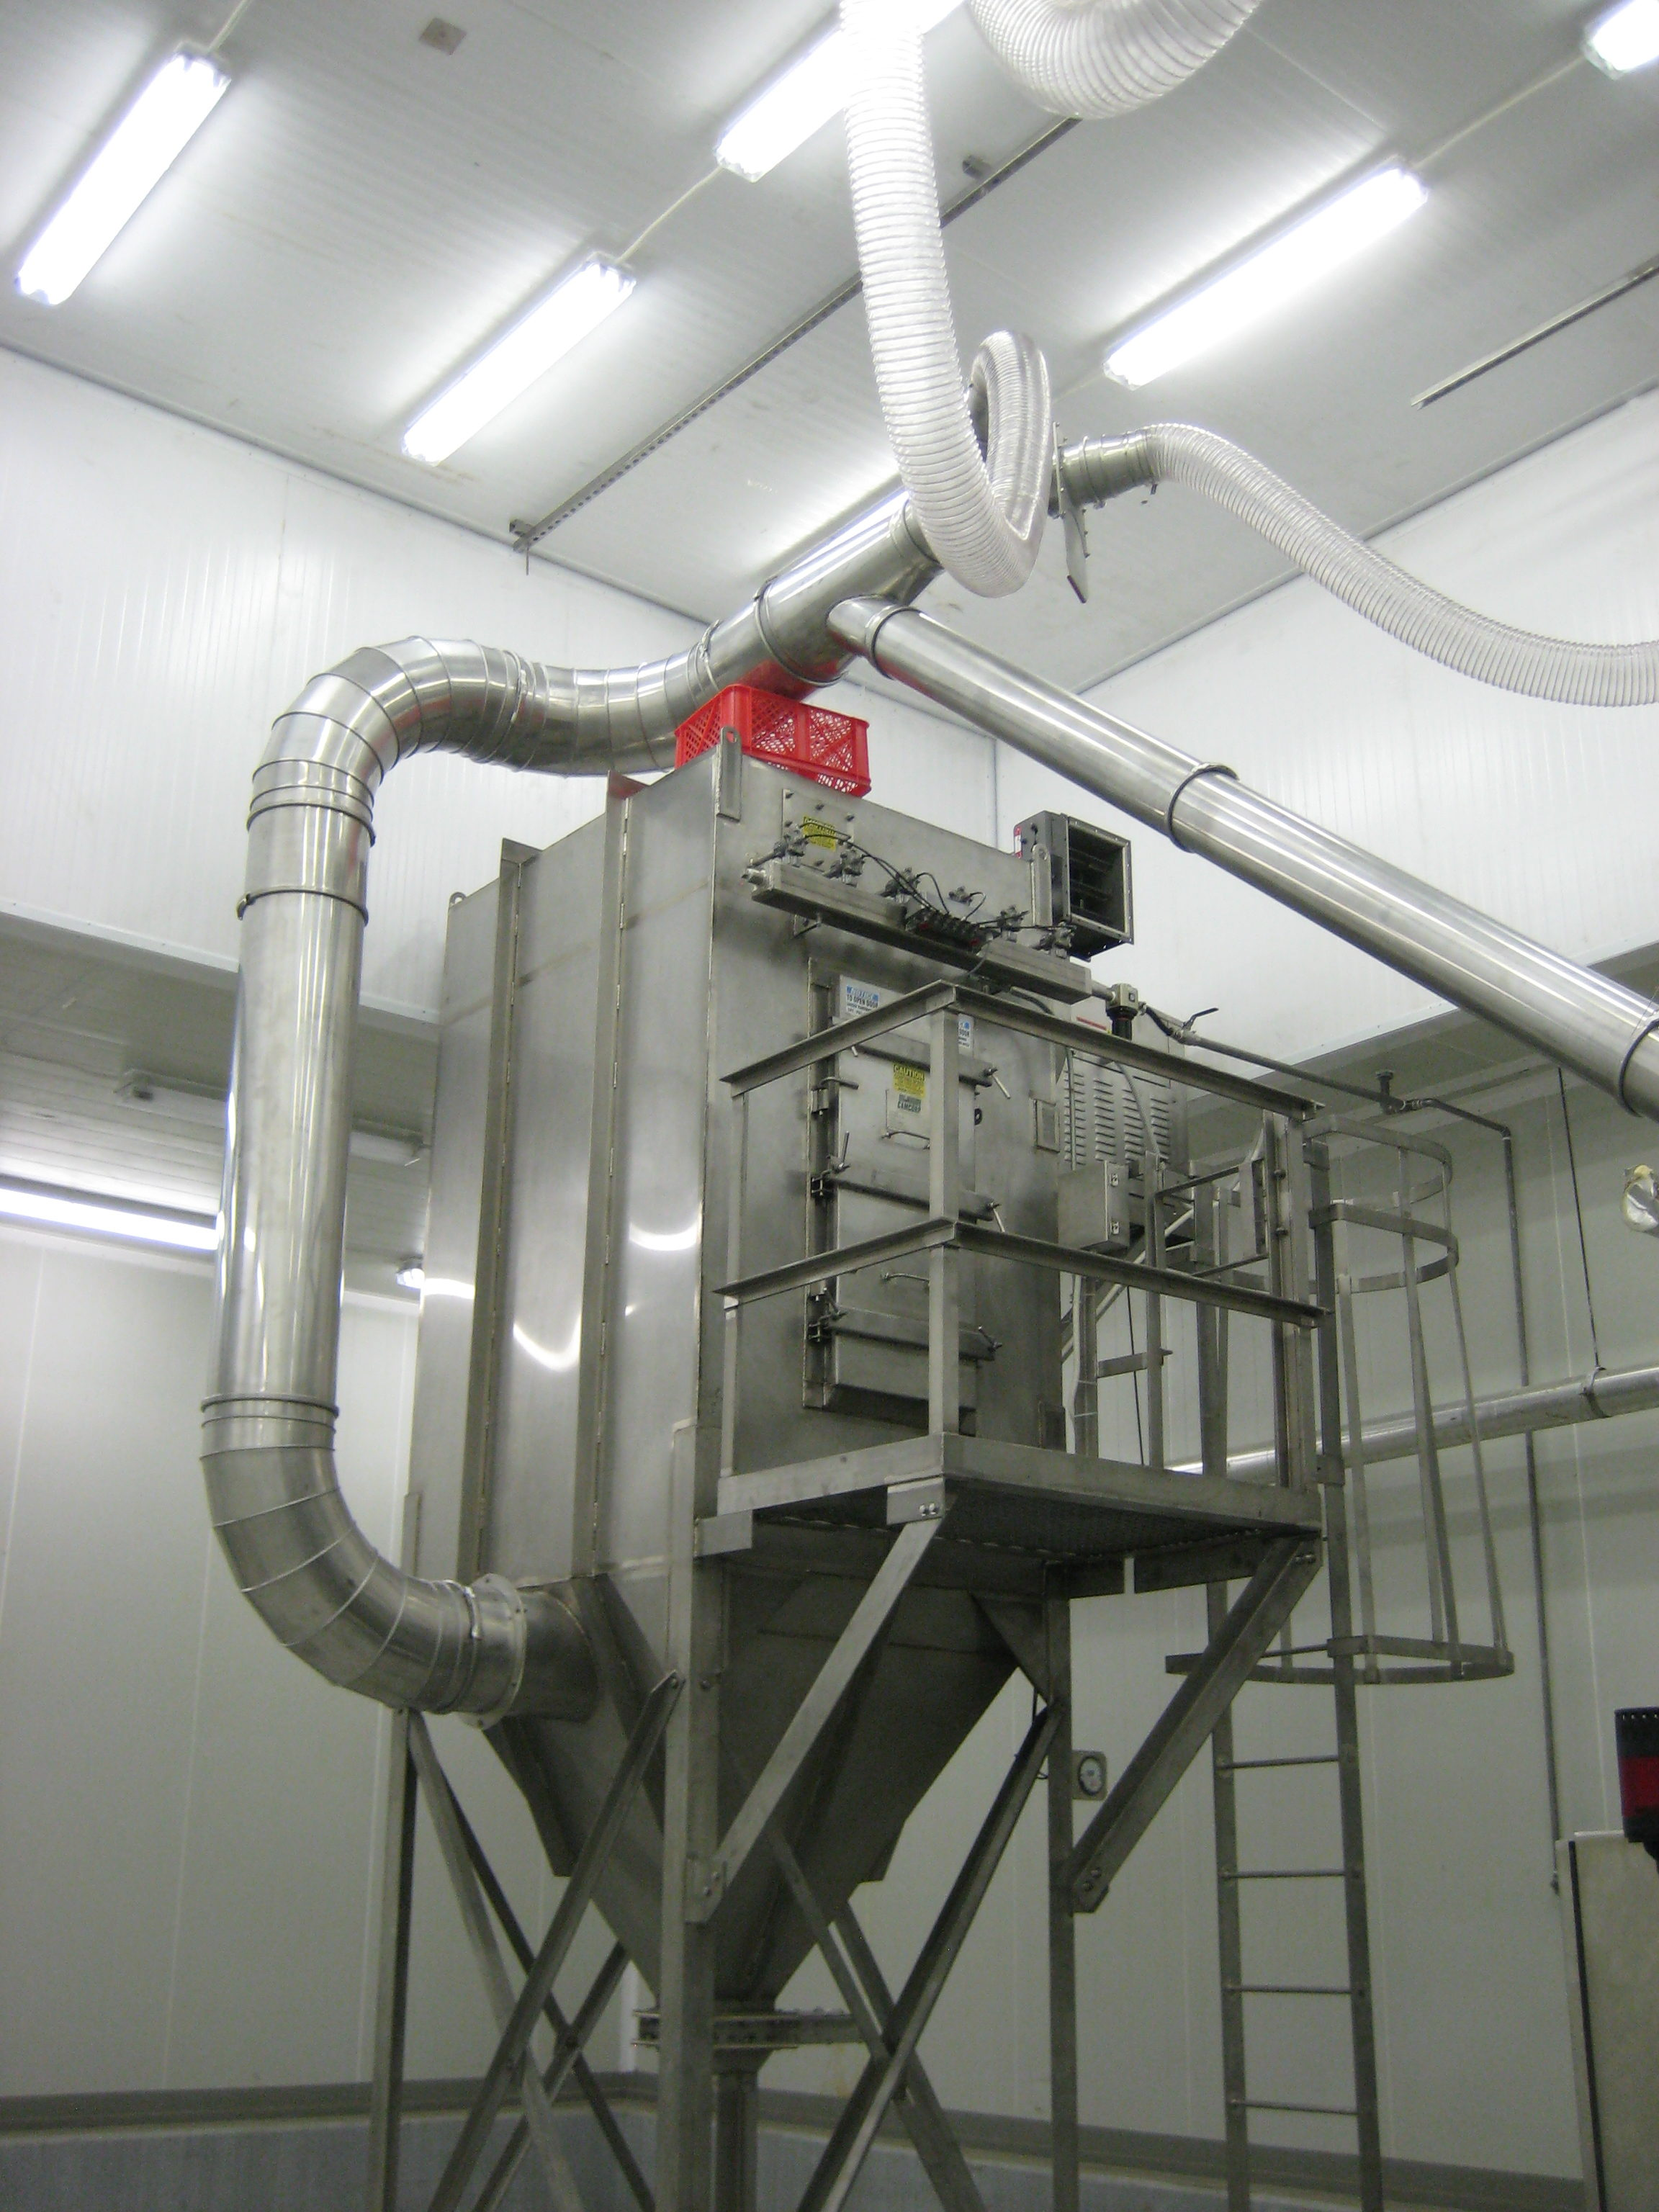 Ingredient Batching Systems Provided with Dust Collection and Pneumatic Conveying Systems